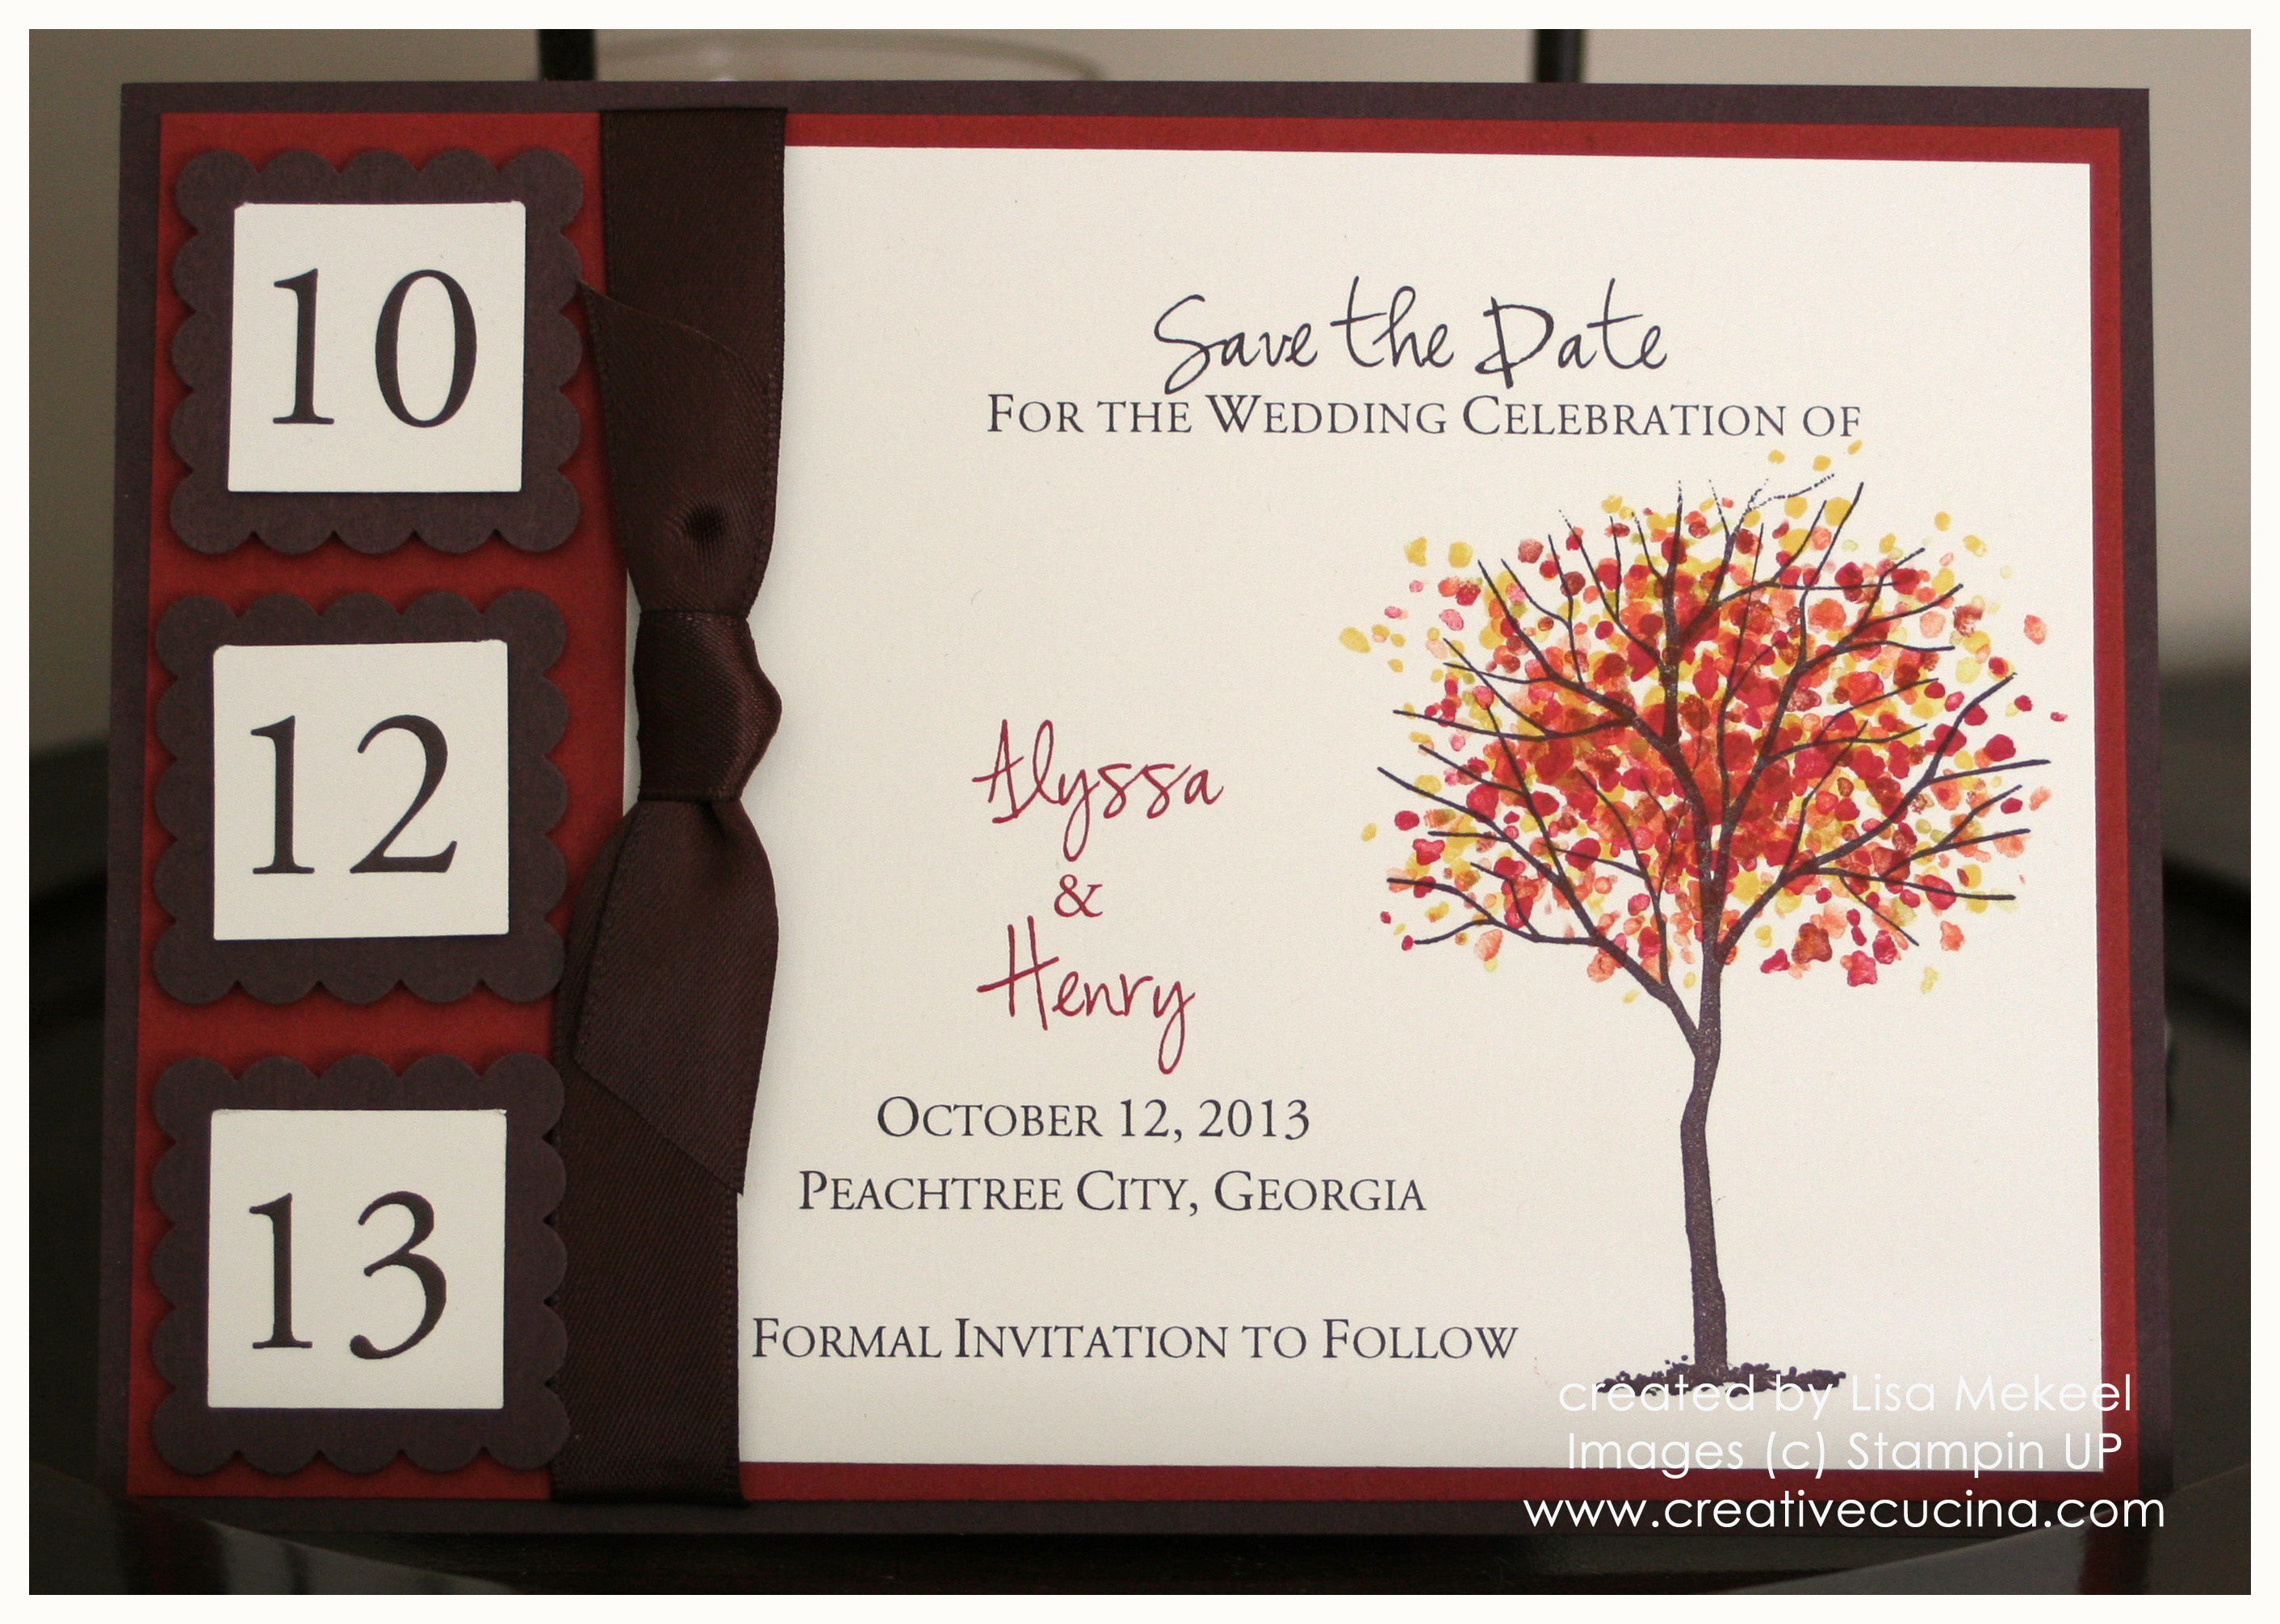 Fall/Autumn Wedding Save the Date Card or Invitation | Creative Cucina